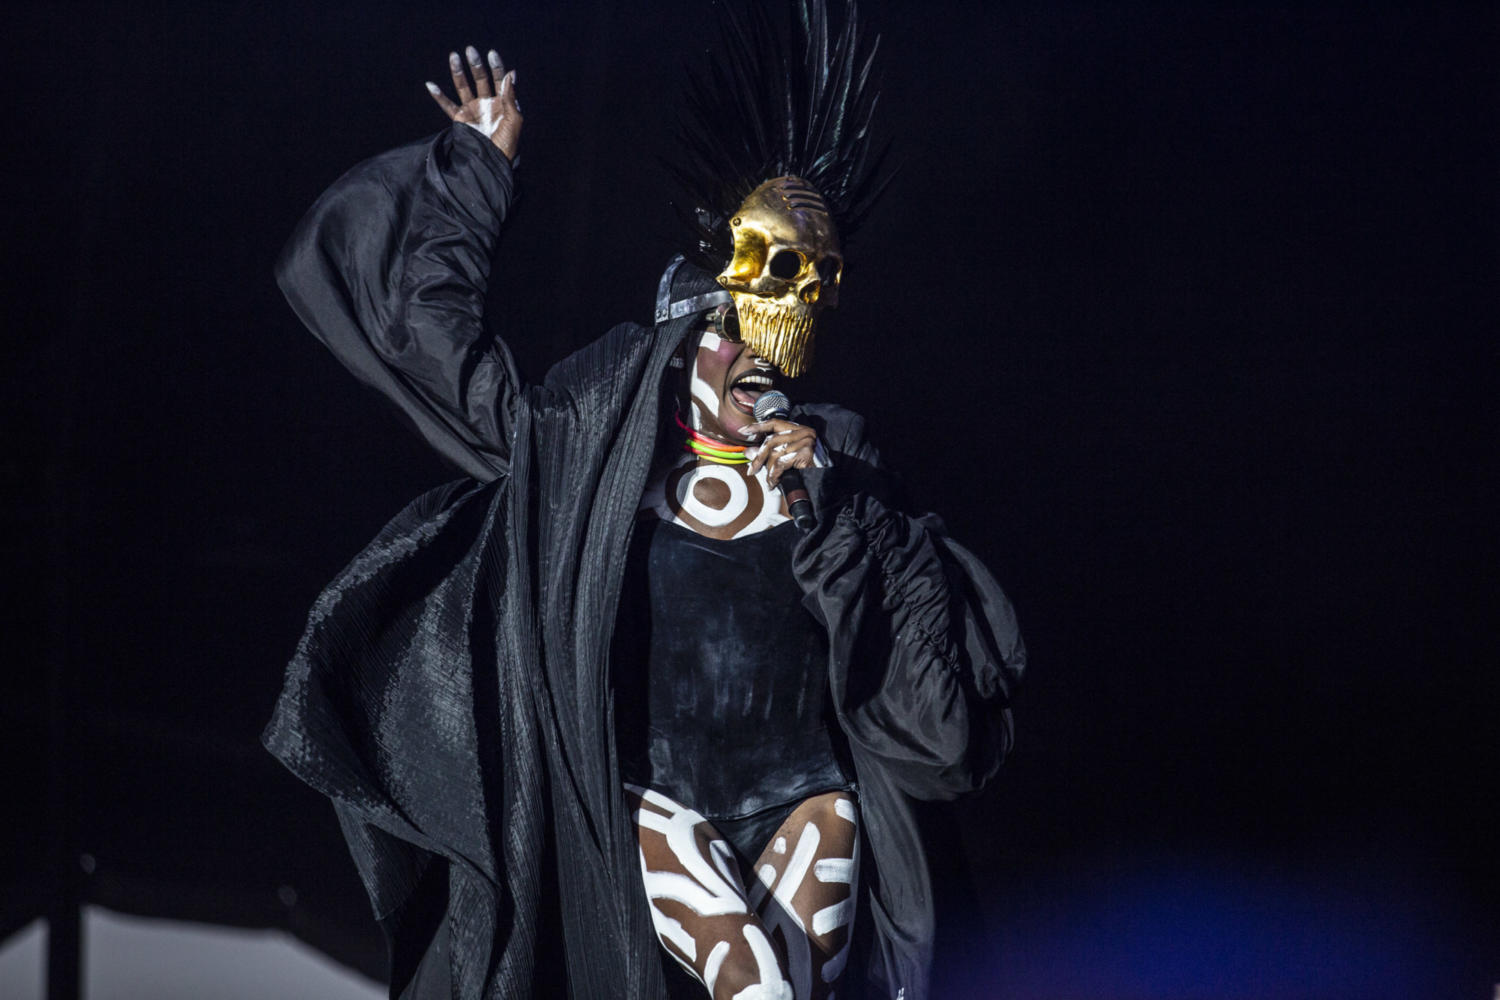 Grace Jones' Meltdown Festival to move to 2021